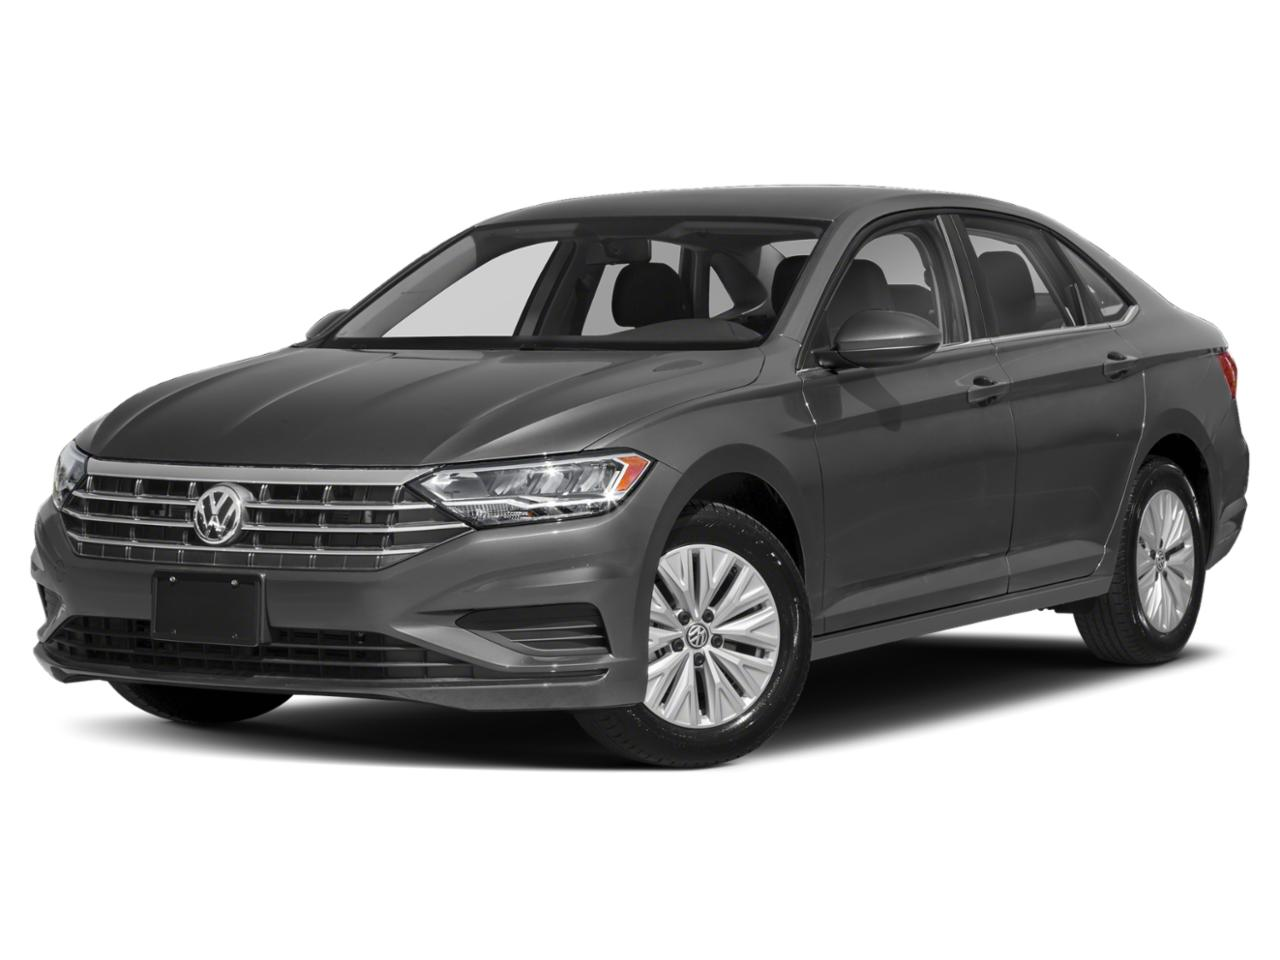 2019 Volkswagen Jetta Vehicle Photo in Baton Rouge, LA 70806